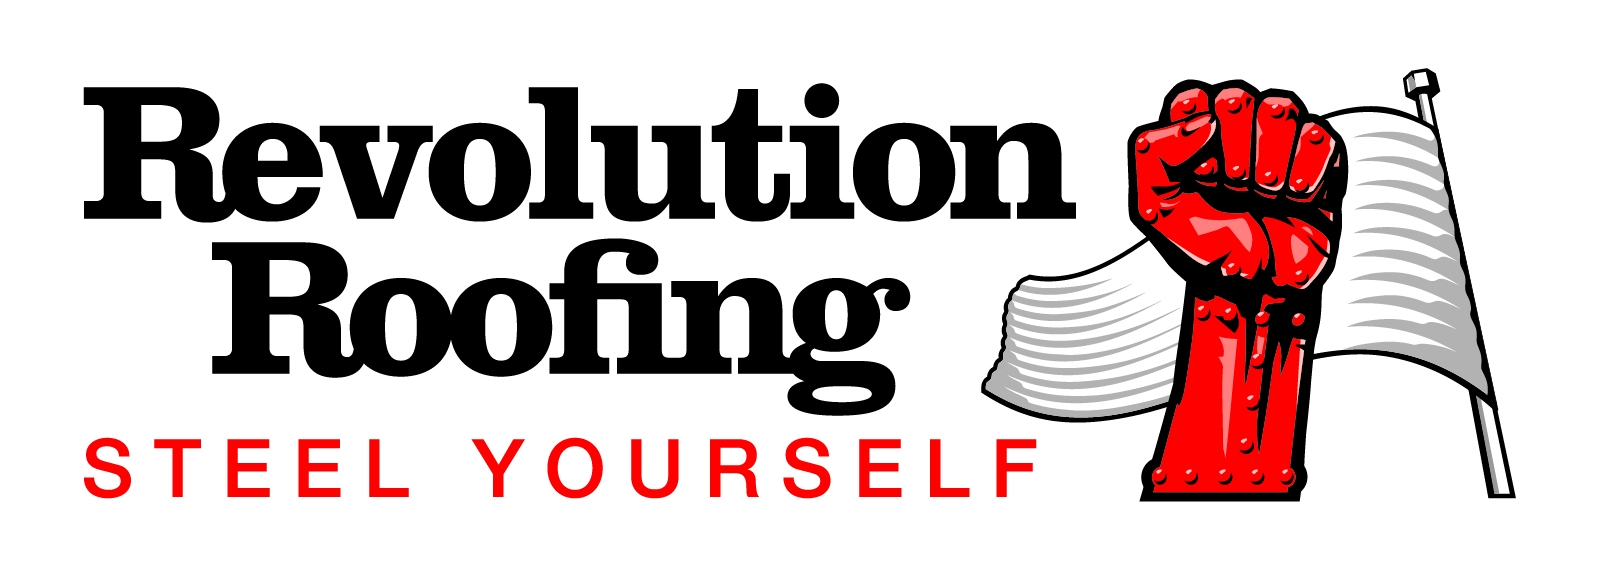 Revolution Roofing SteelYourself New CMYK logo